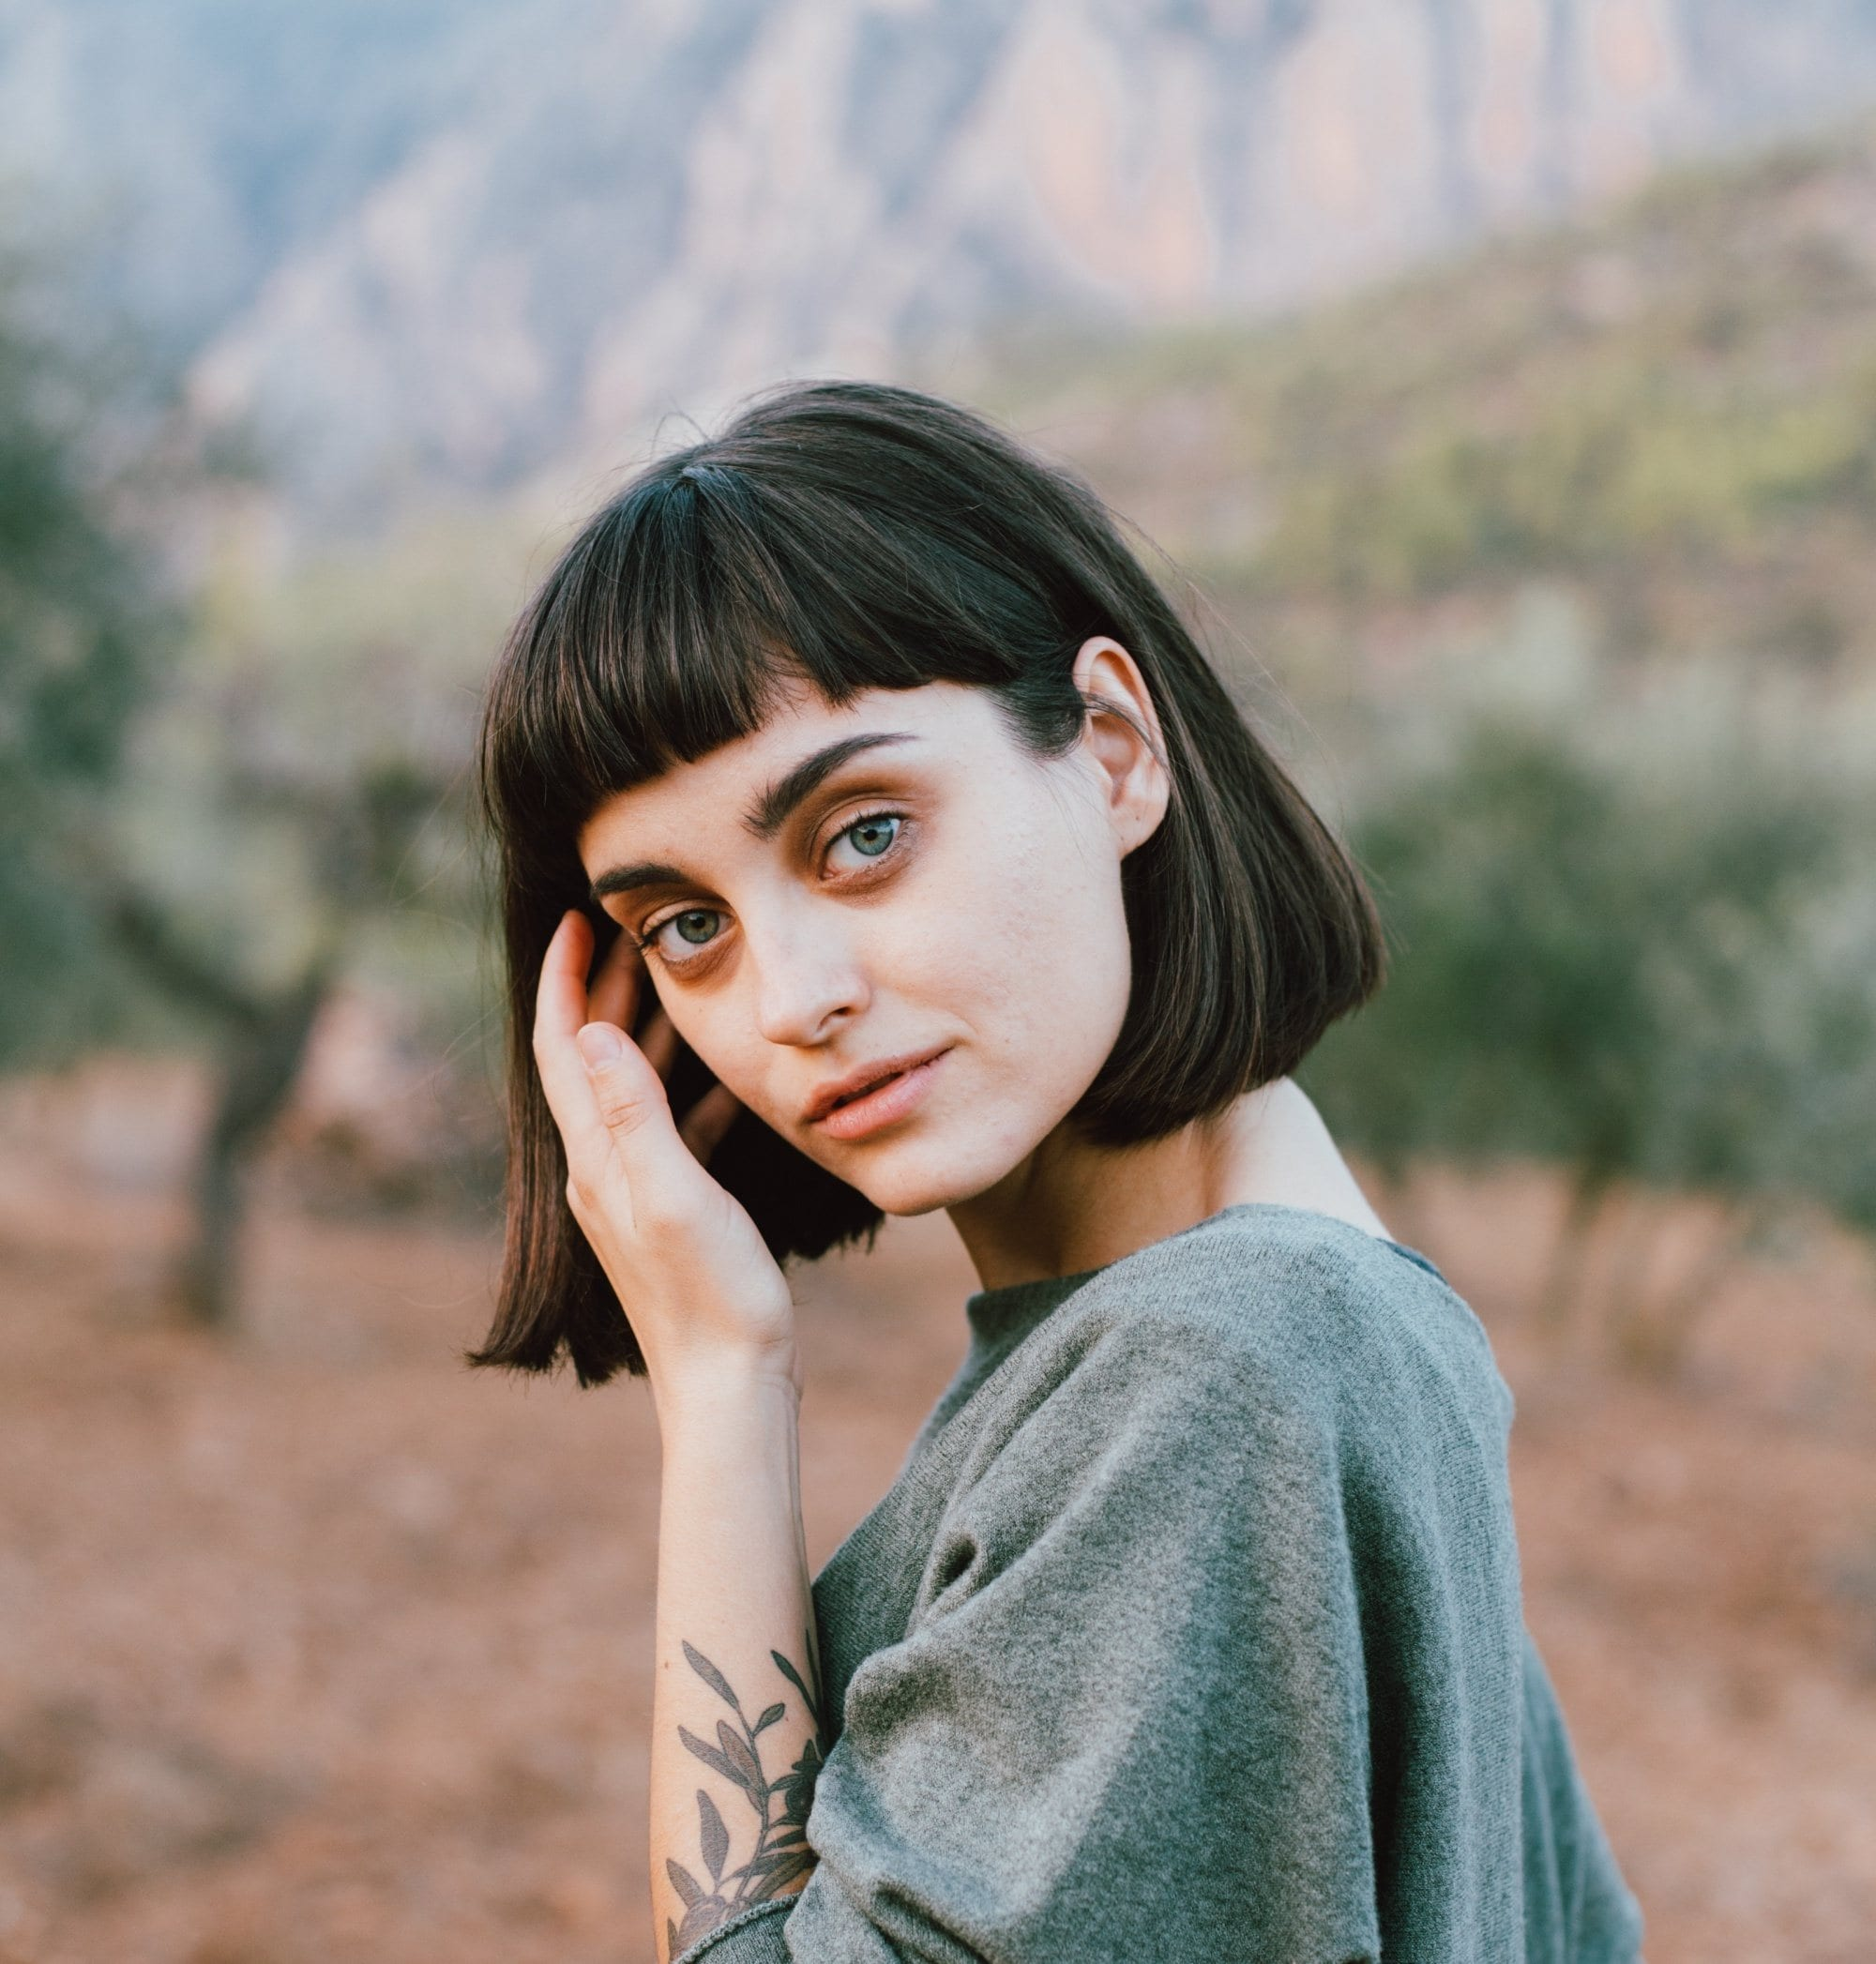 Baby bangs for short hair: Closeup shot of a woman with short black hair with baby bangs wearing a shirt in the woods